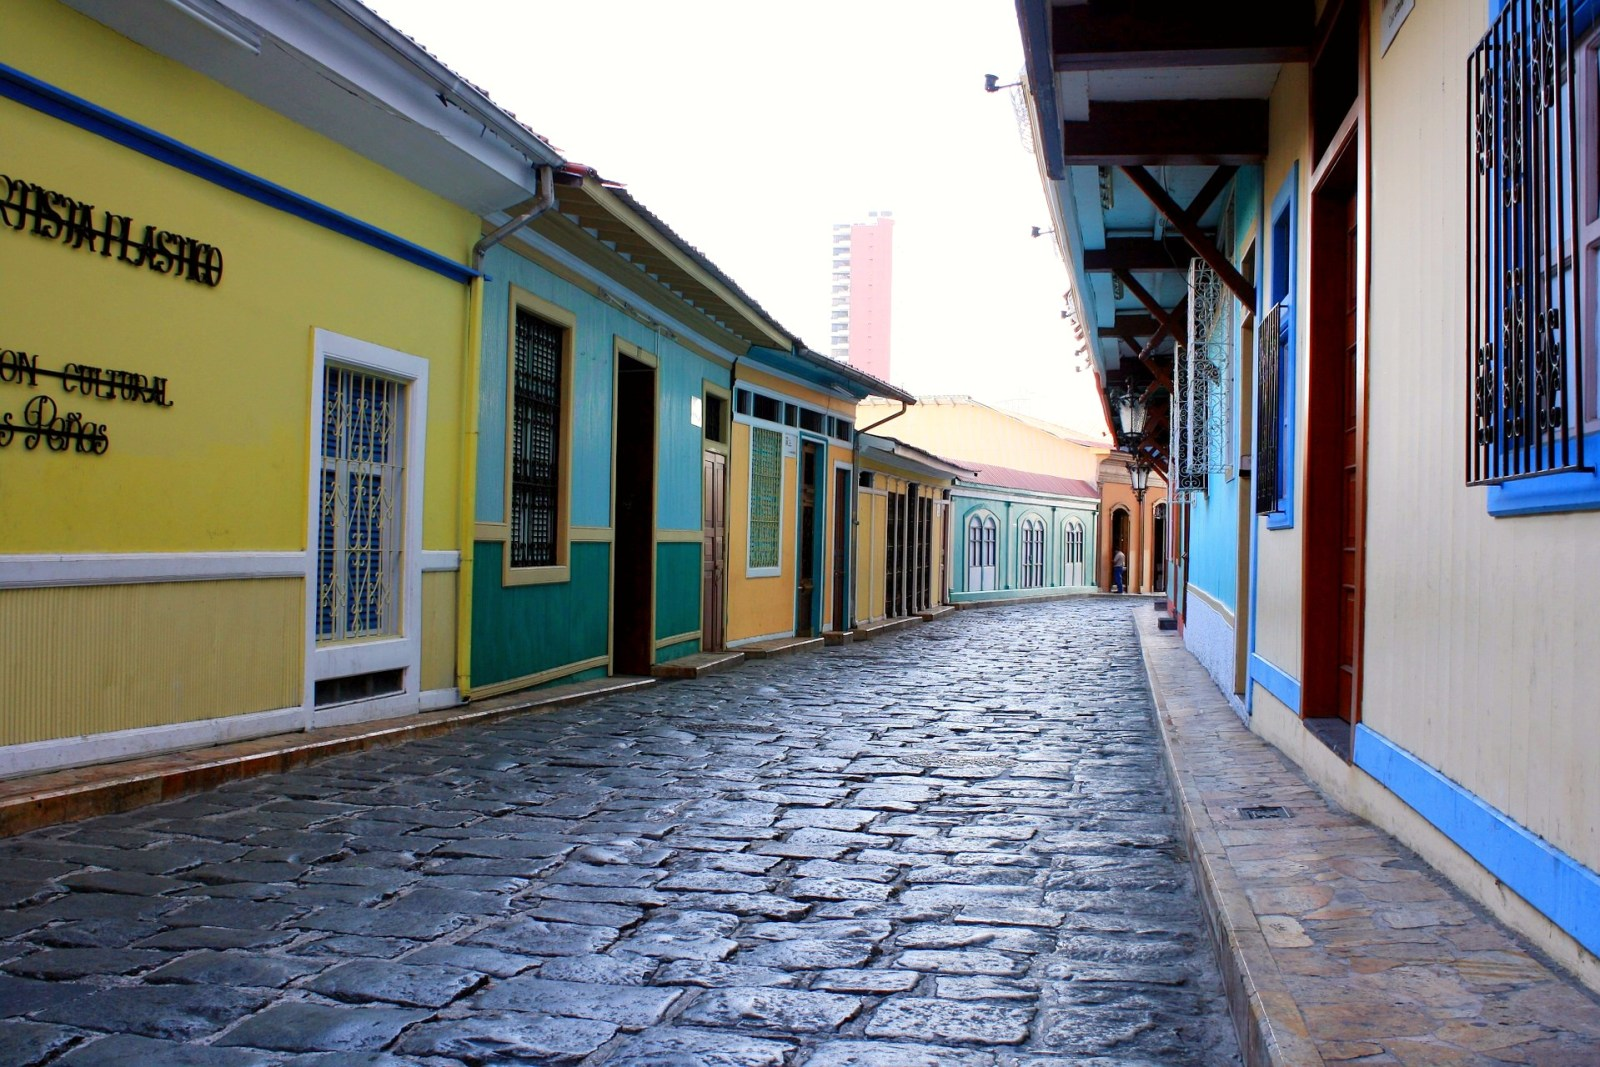 The Best Areas to Stay in Guayaquil, Ecuador